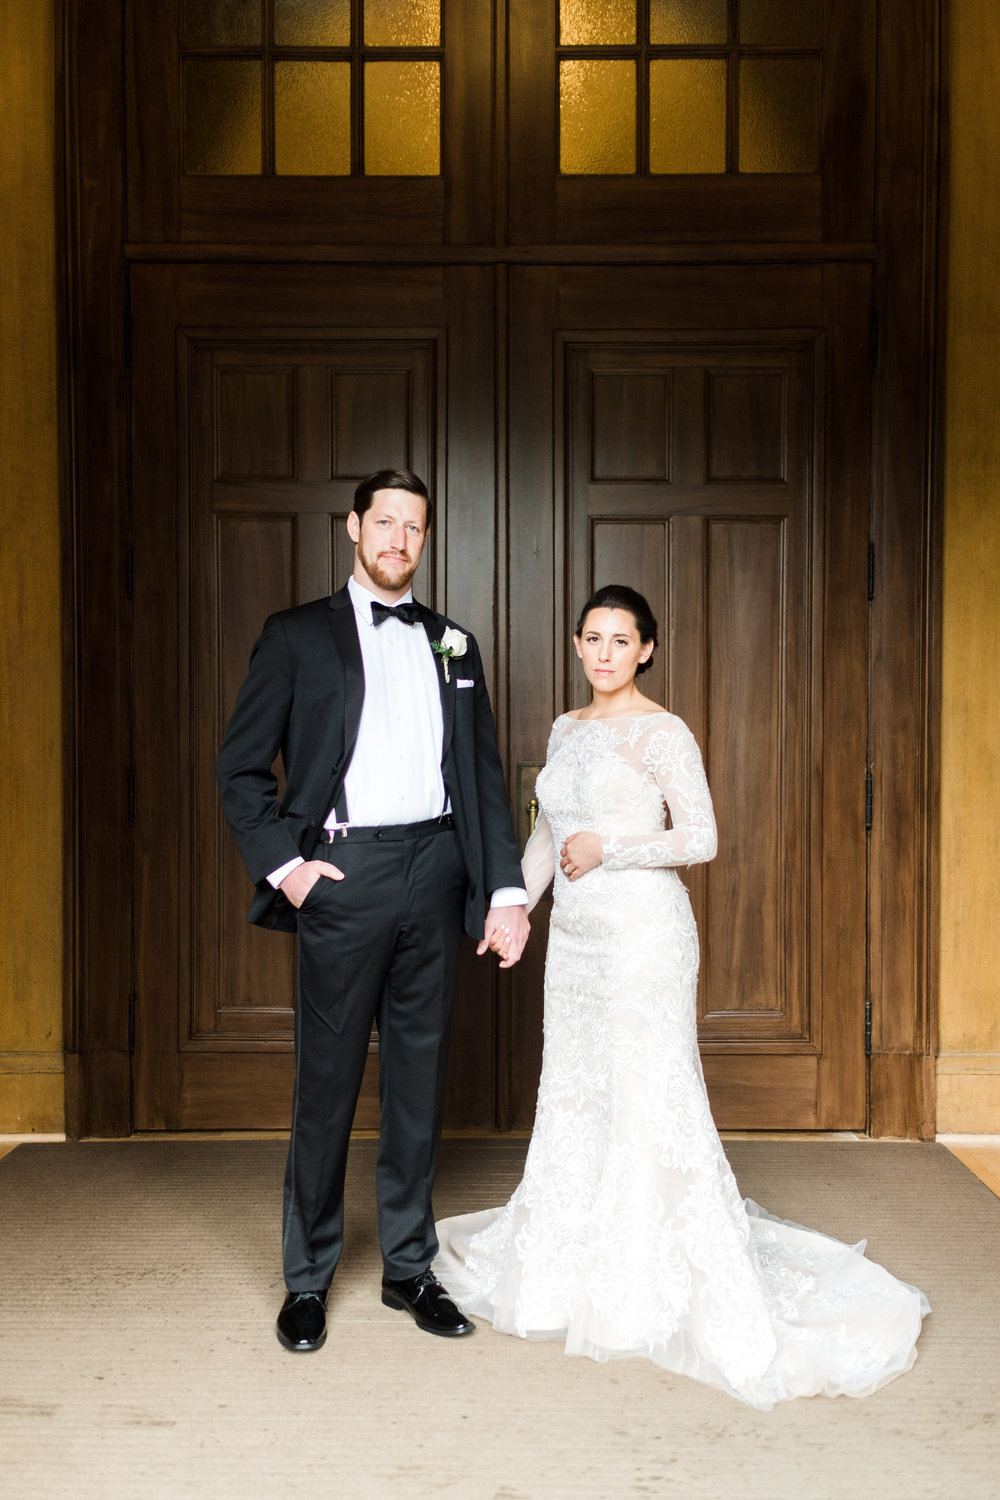 Bride and groom portrait in downtown Saint Paul's Our Lady of the Assumption parish